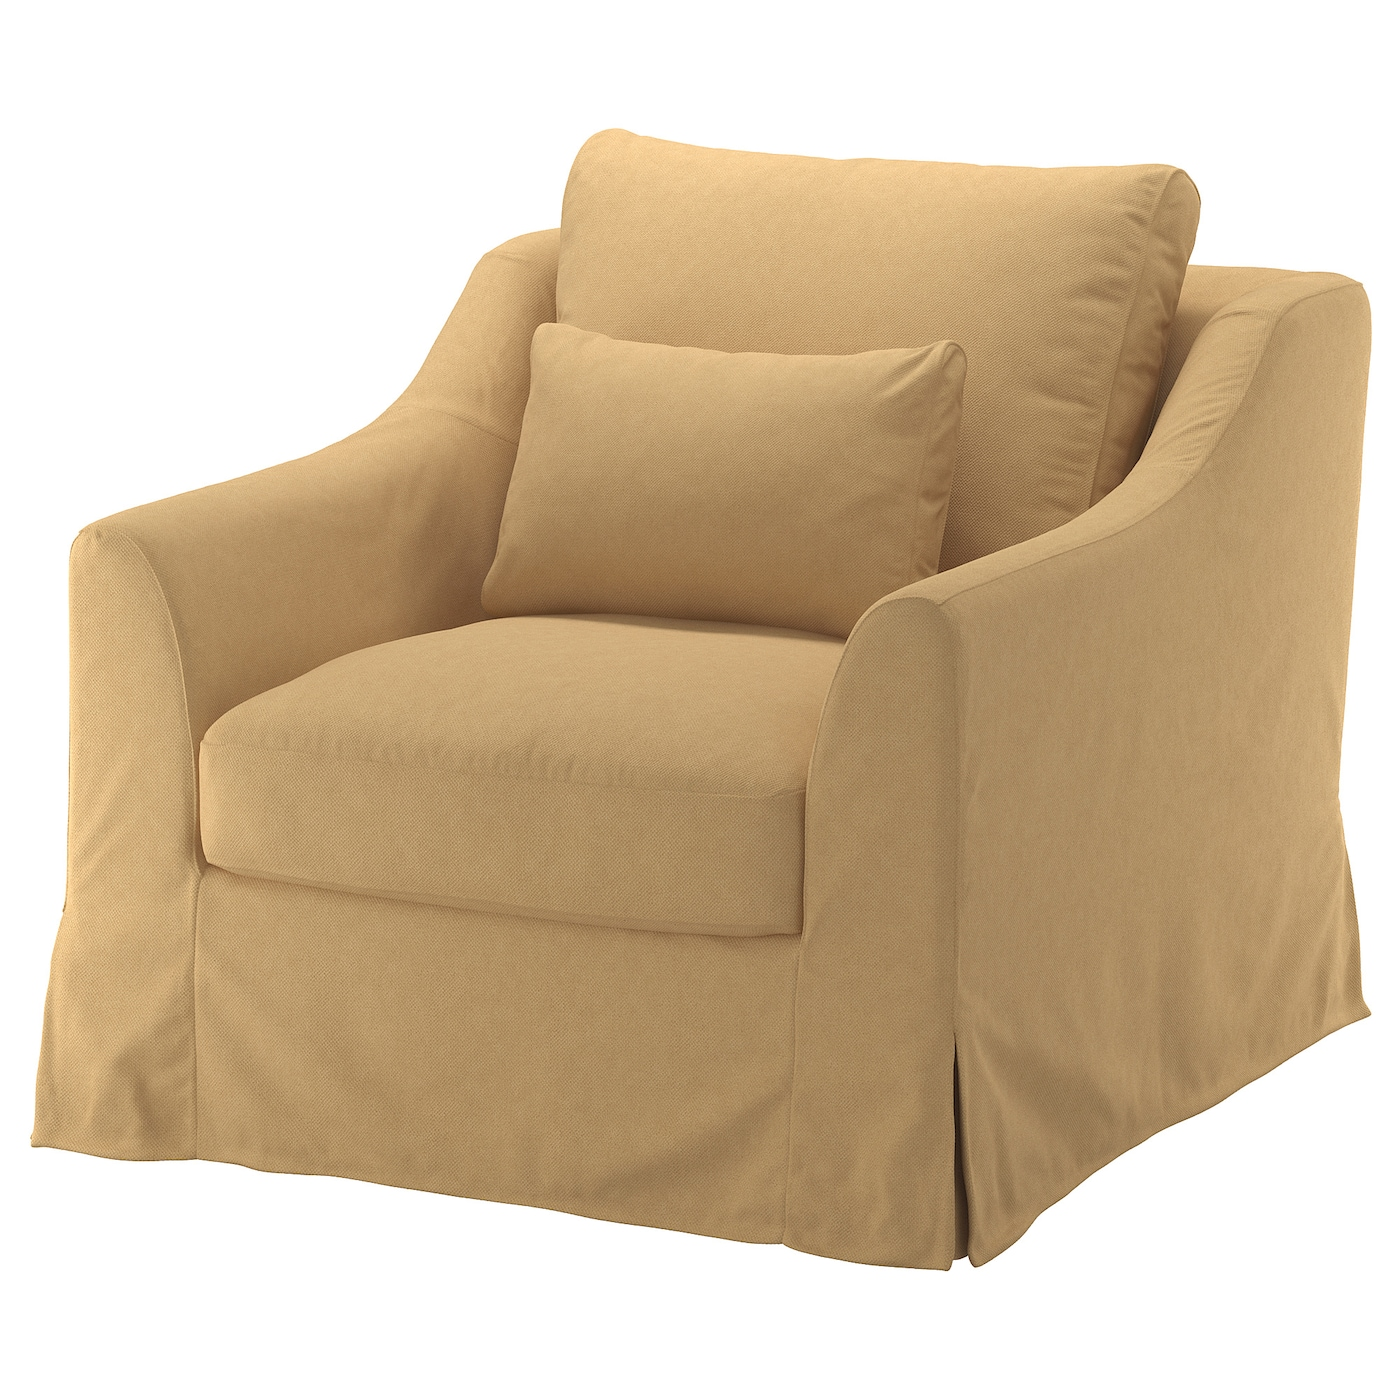 Ikea färlöv armchair the cover is easy to keep clean as it is removable and can